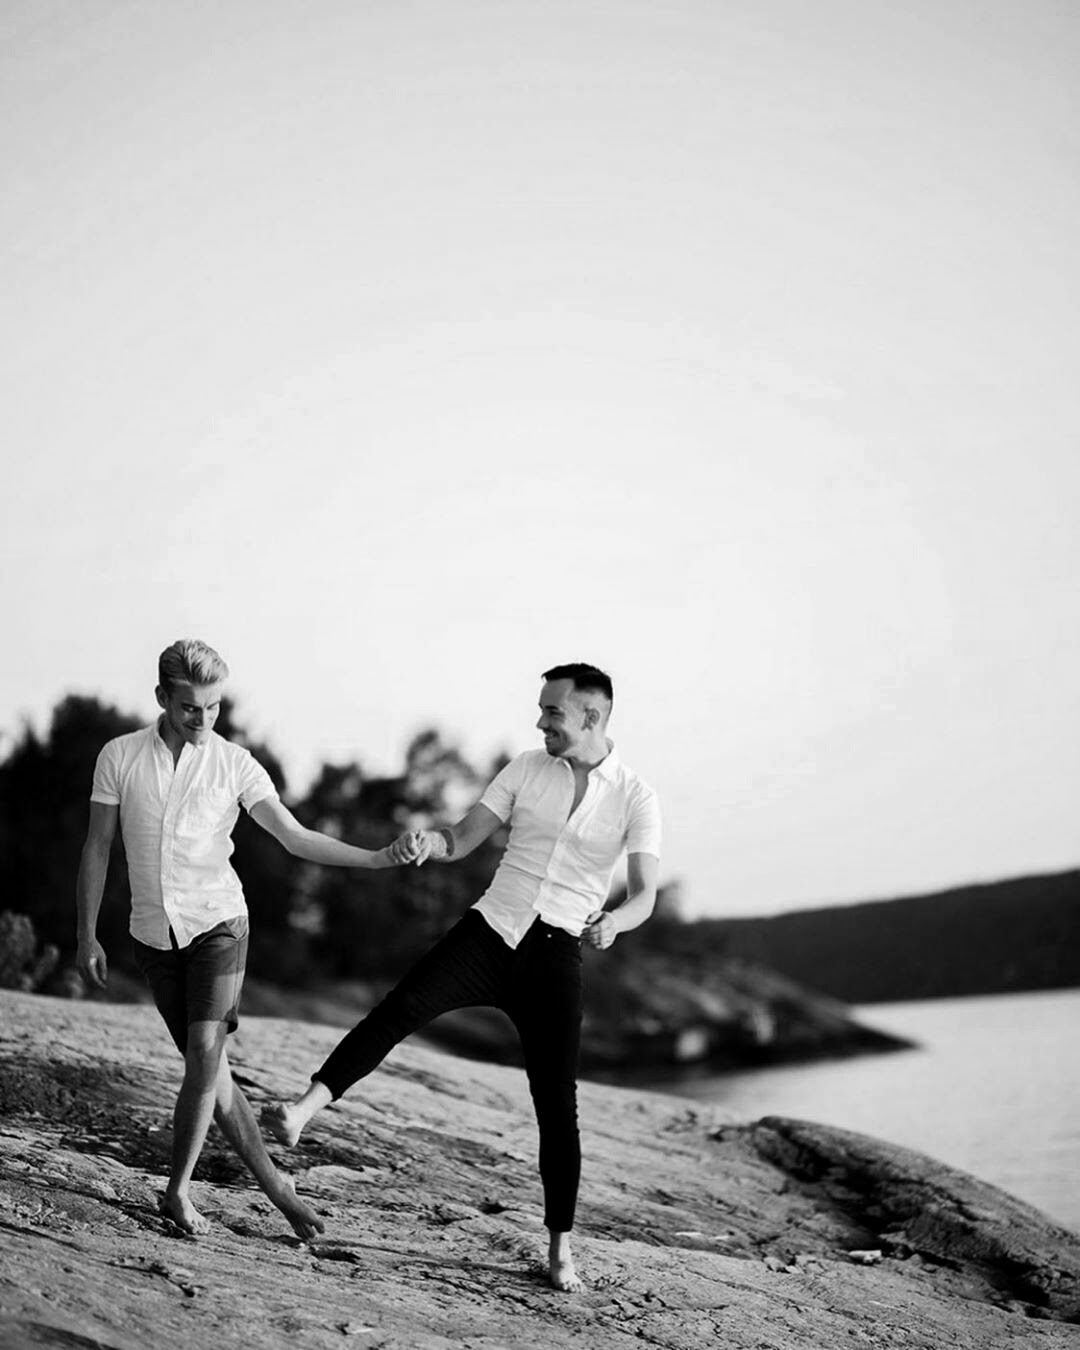 LovE is in AiR (I), by Jacob Lindman and Stefan Bengtsson